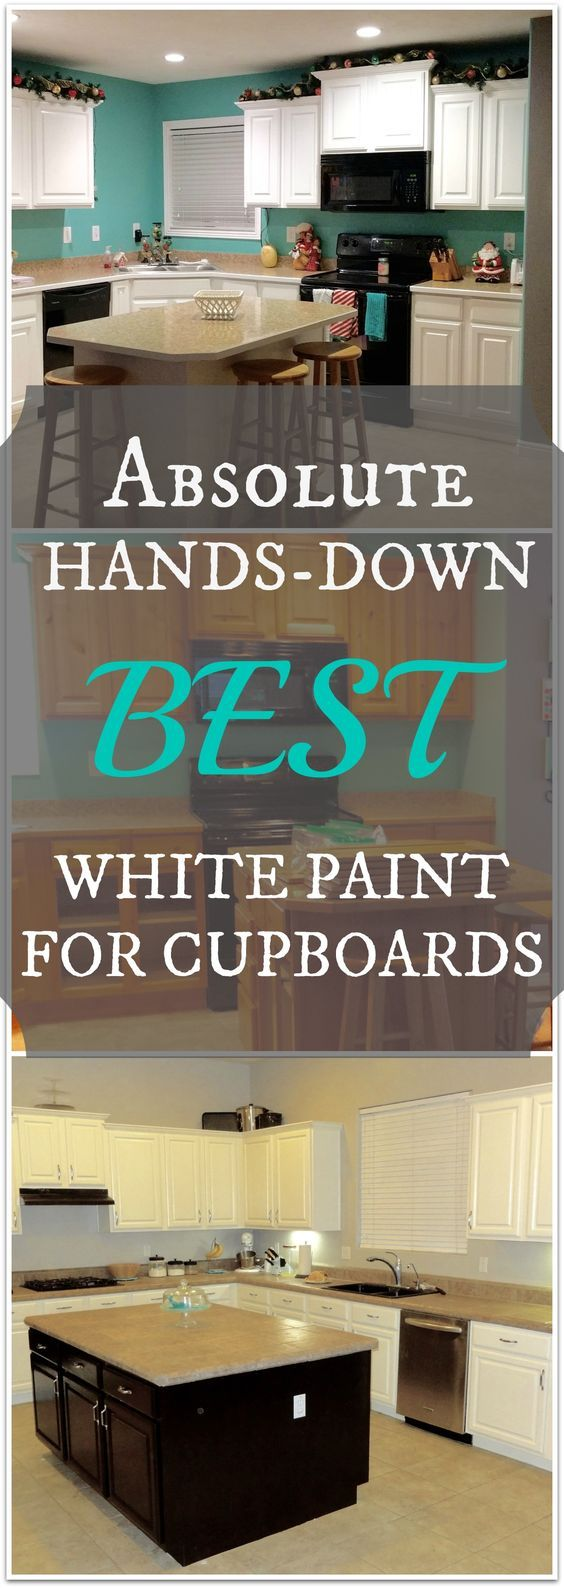 Painted Kitchen Cabinets White 25 Best Painting Kitchen Cabinets White Trending Ideas On